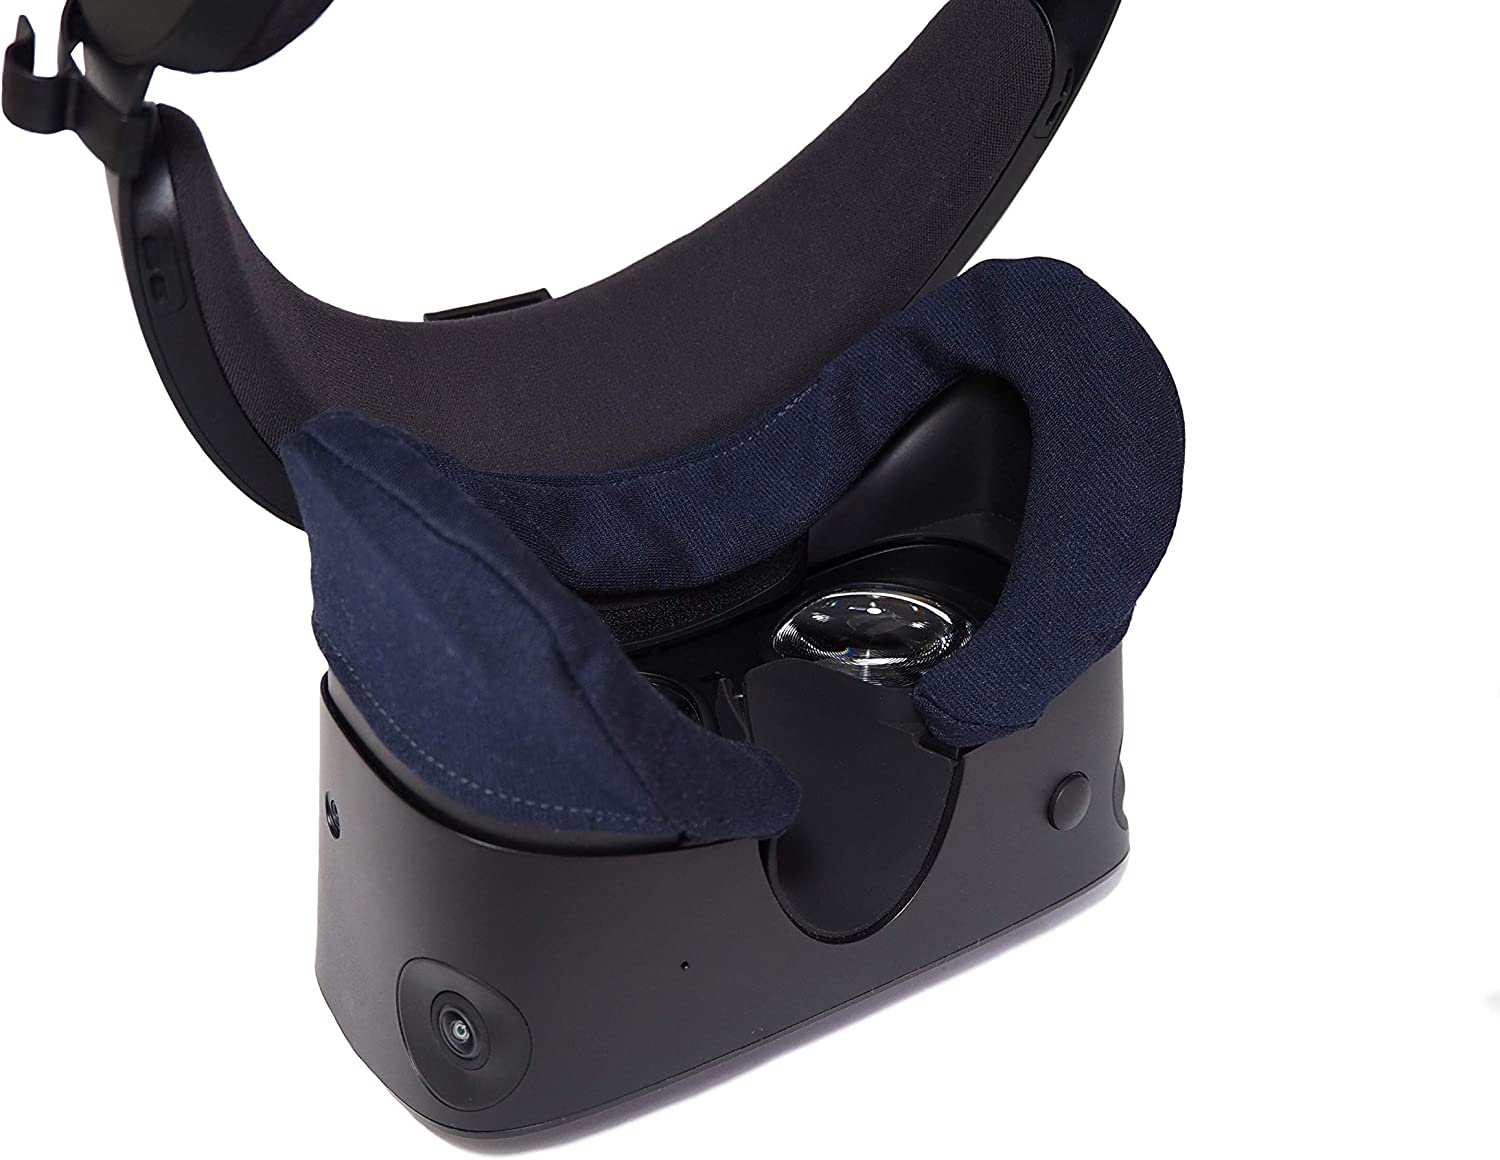 Fabric Cover for Oculus Rift S Sweat Absorbent - Quick Drying